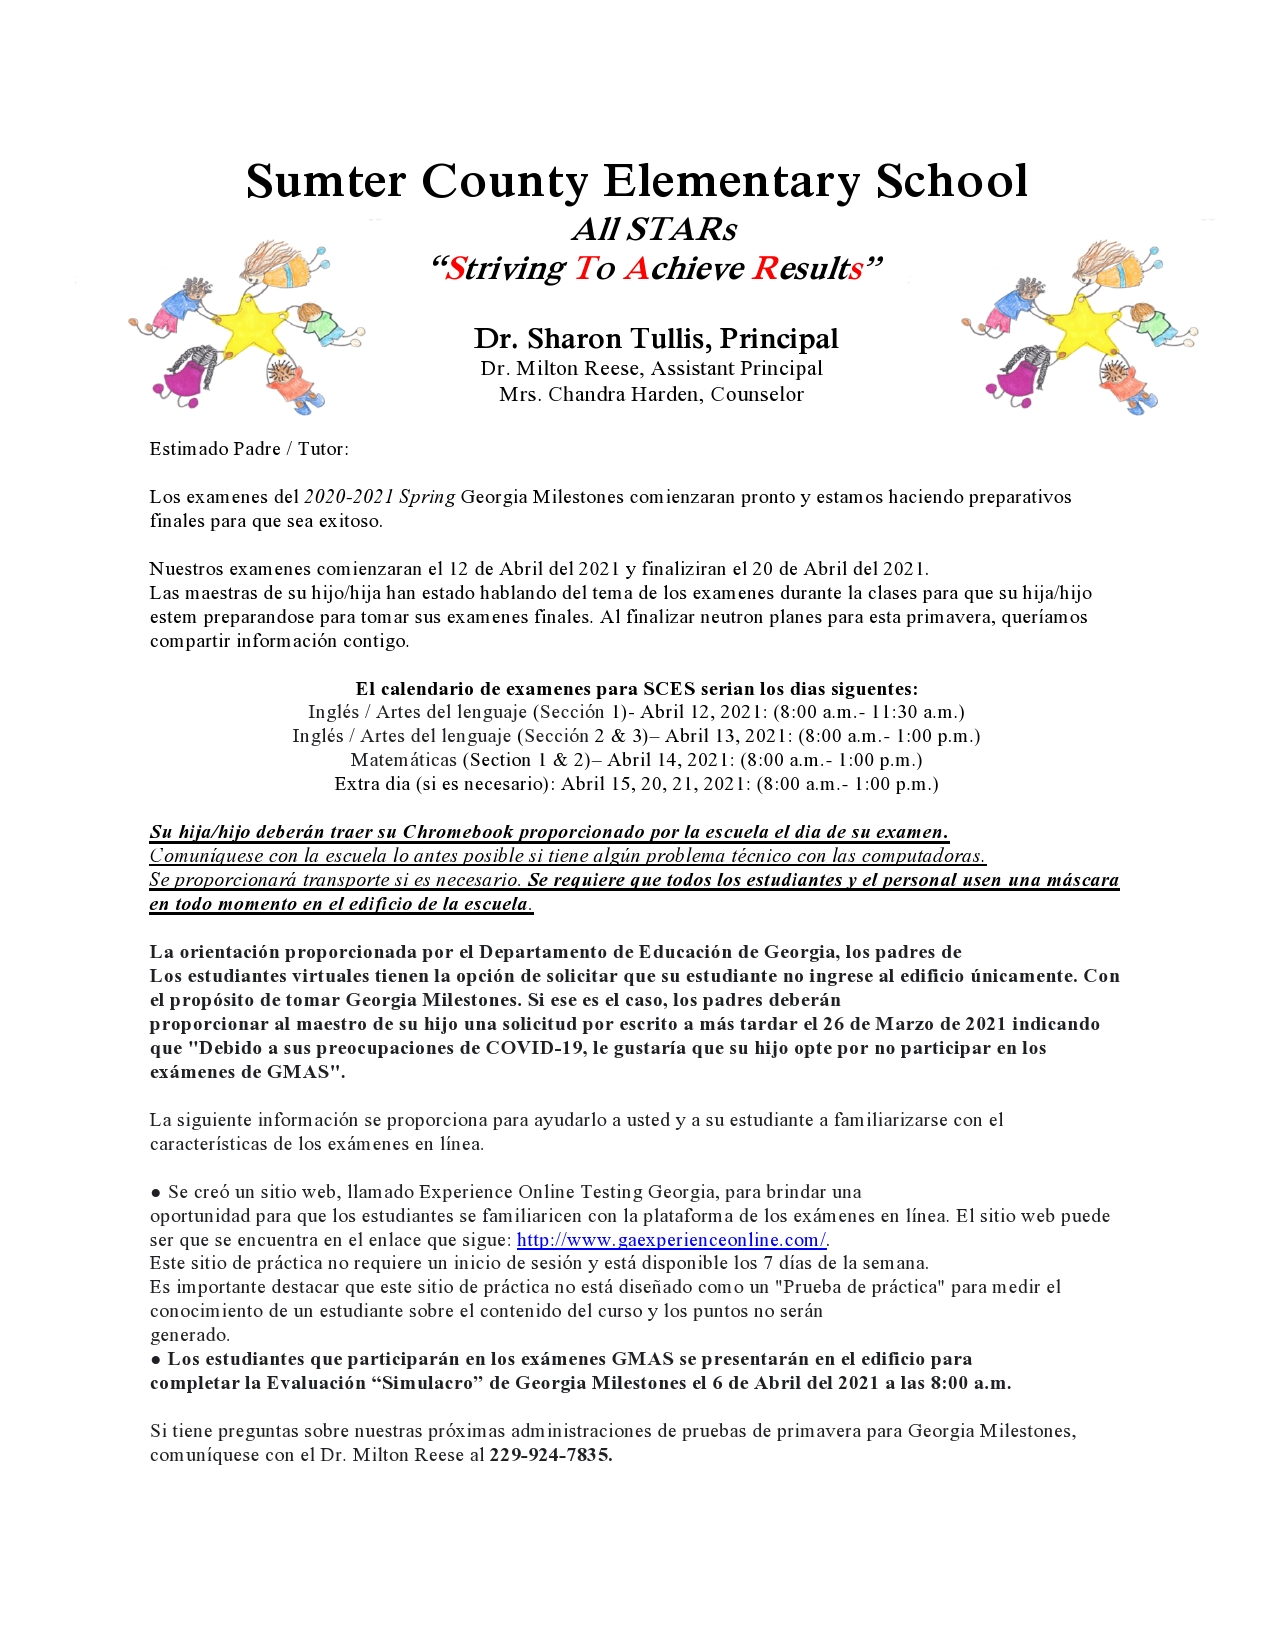 GMAS Letter to Parents - Spanish